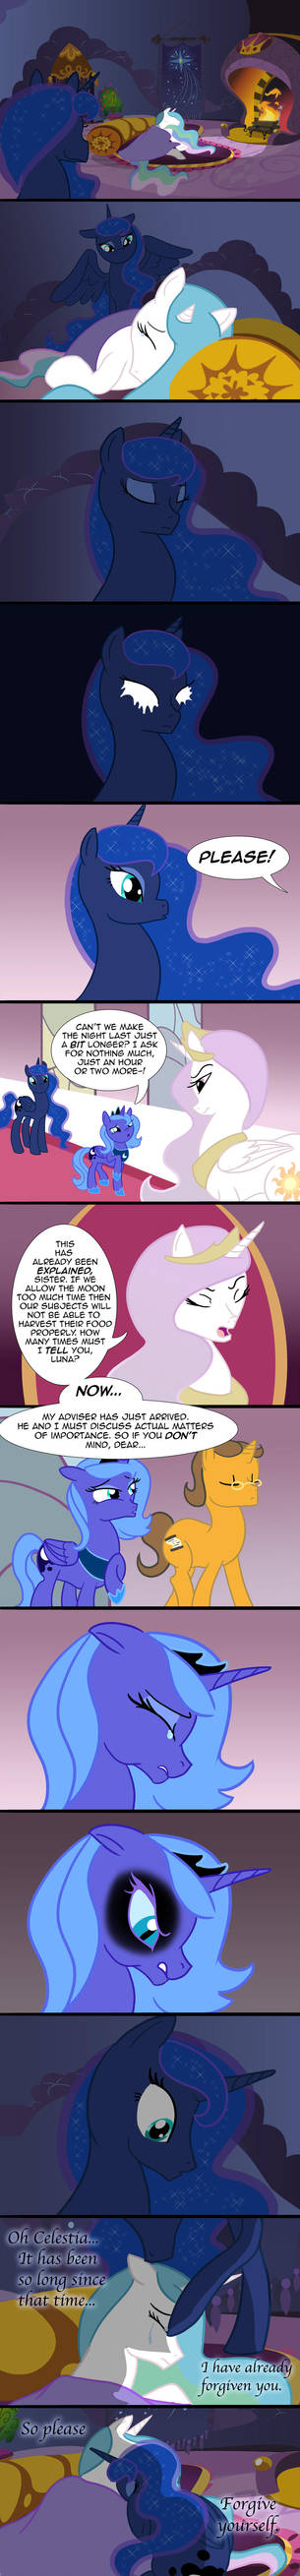 Forgiveness (Fanthrose comish) by Tprinces